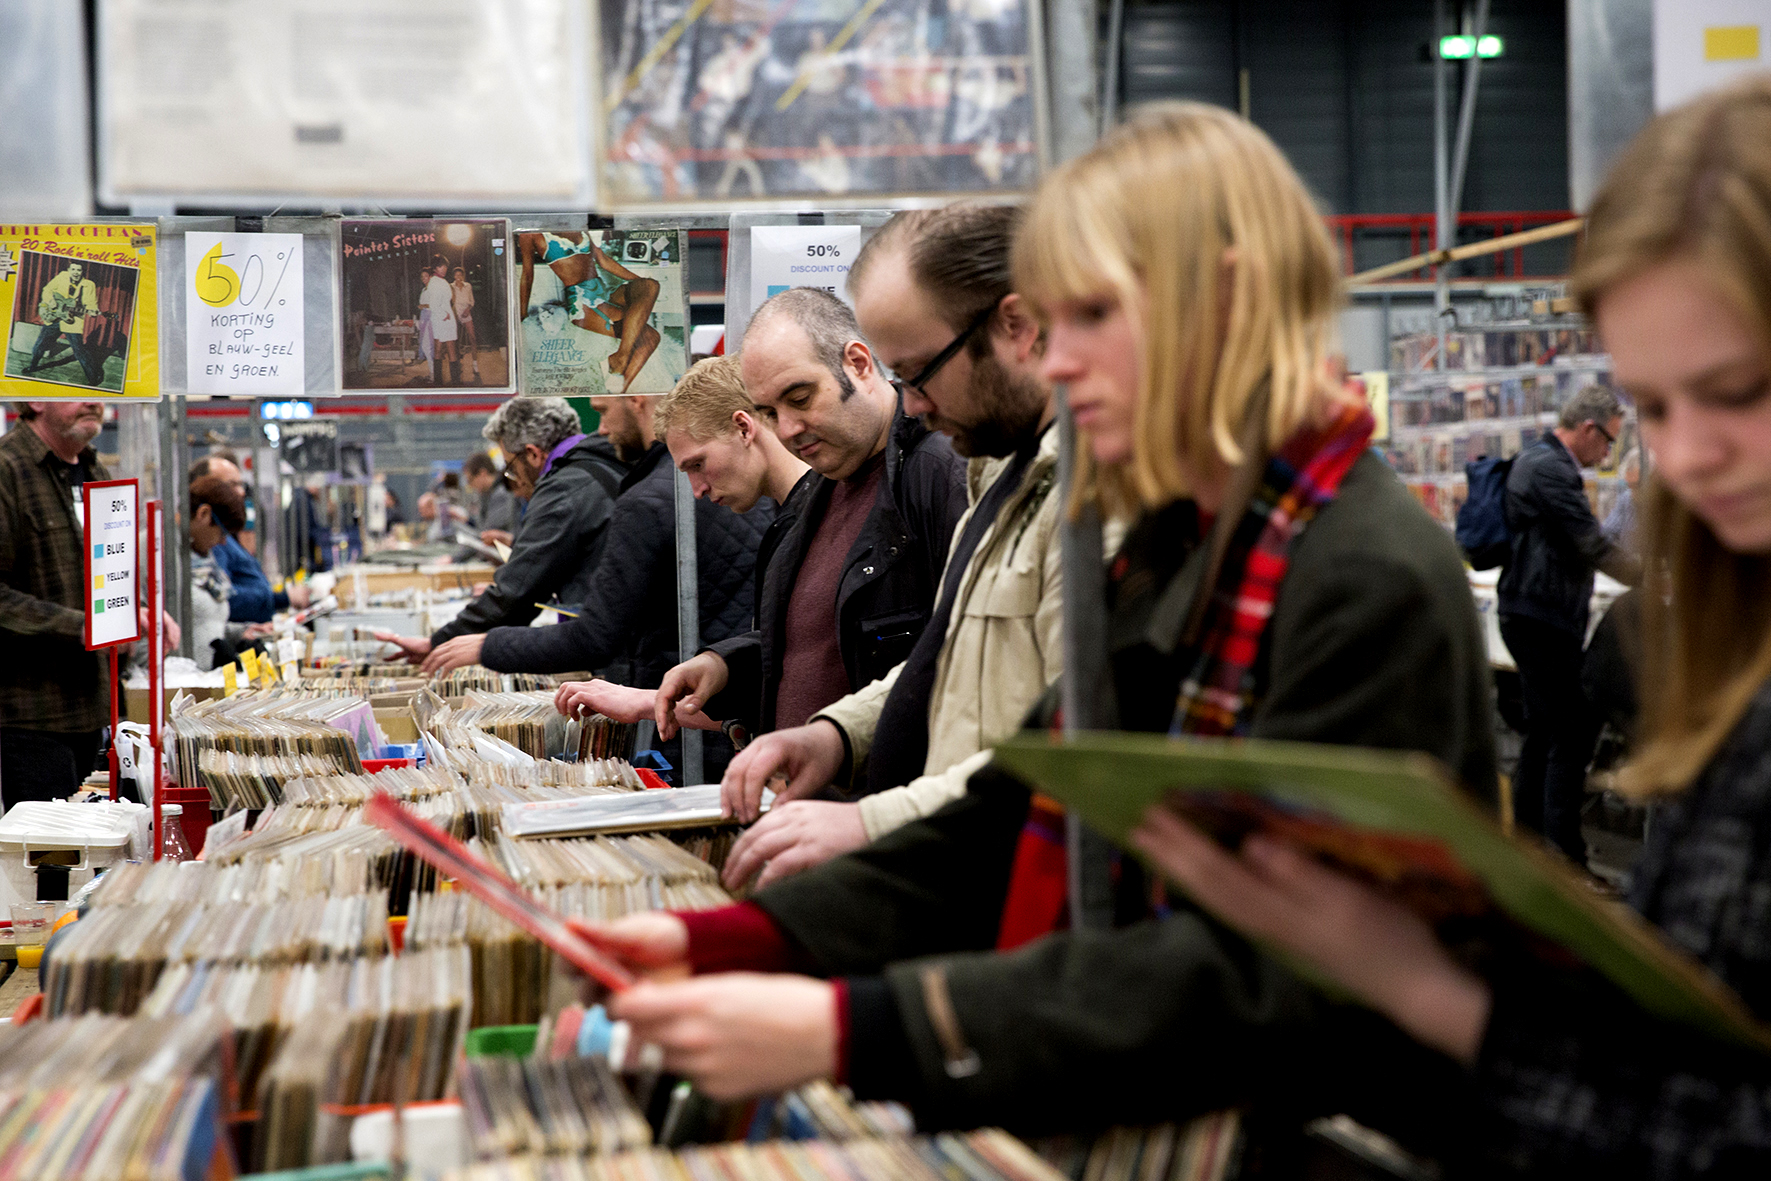 World's Largest Record Fair Happening in Utrecht During LGW17